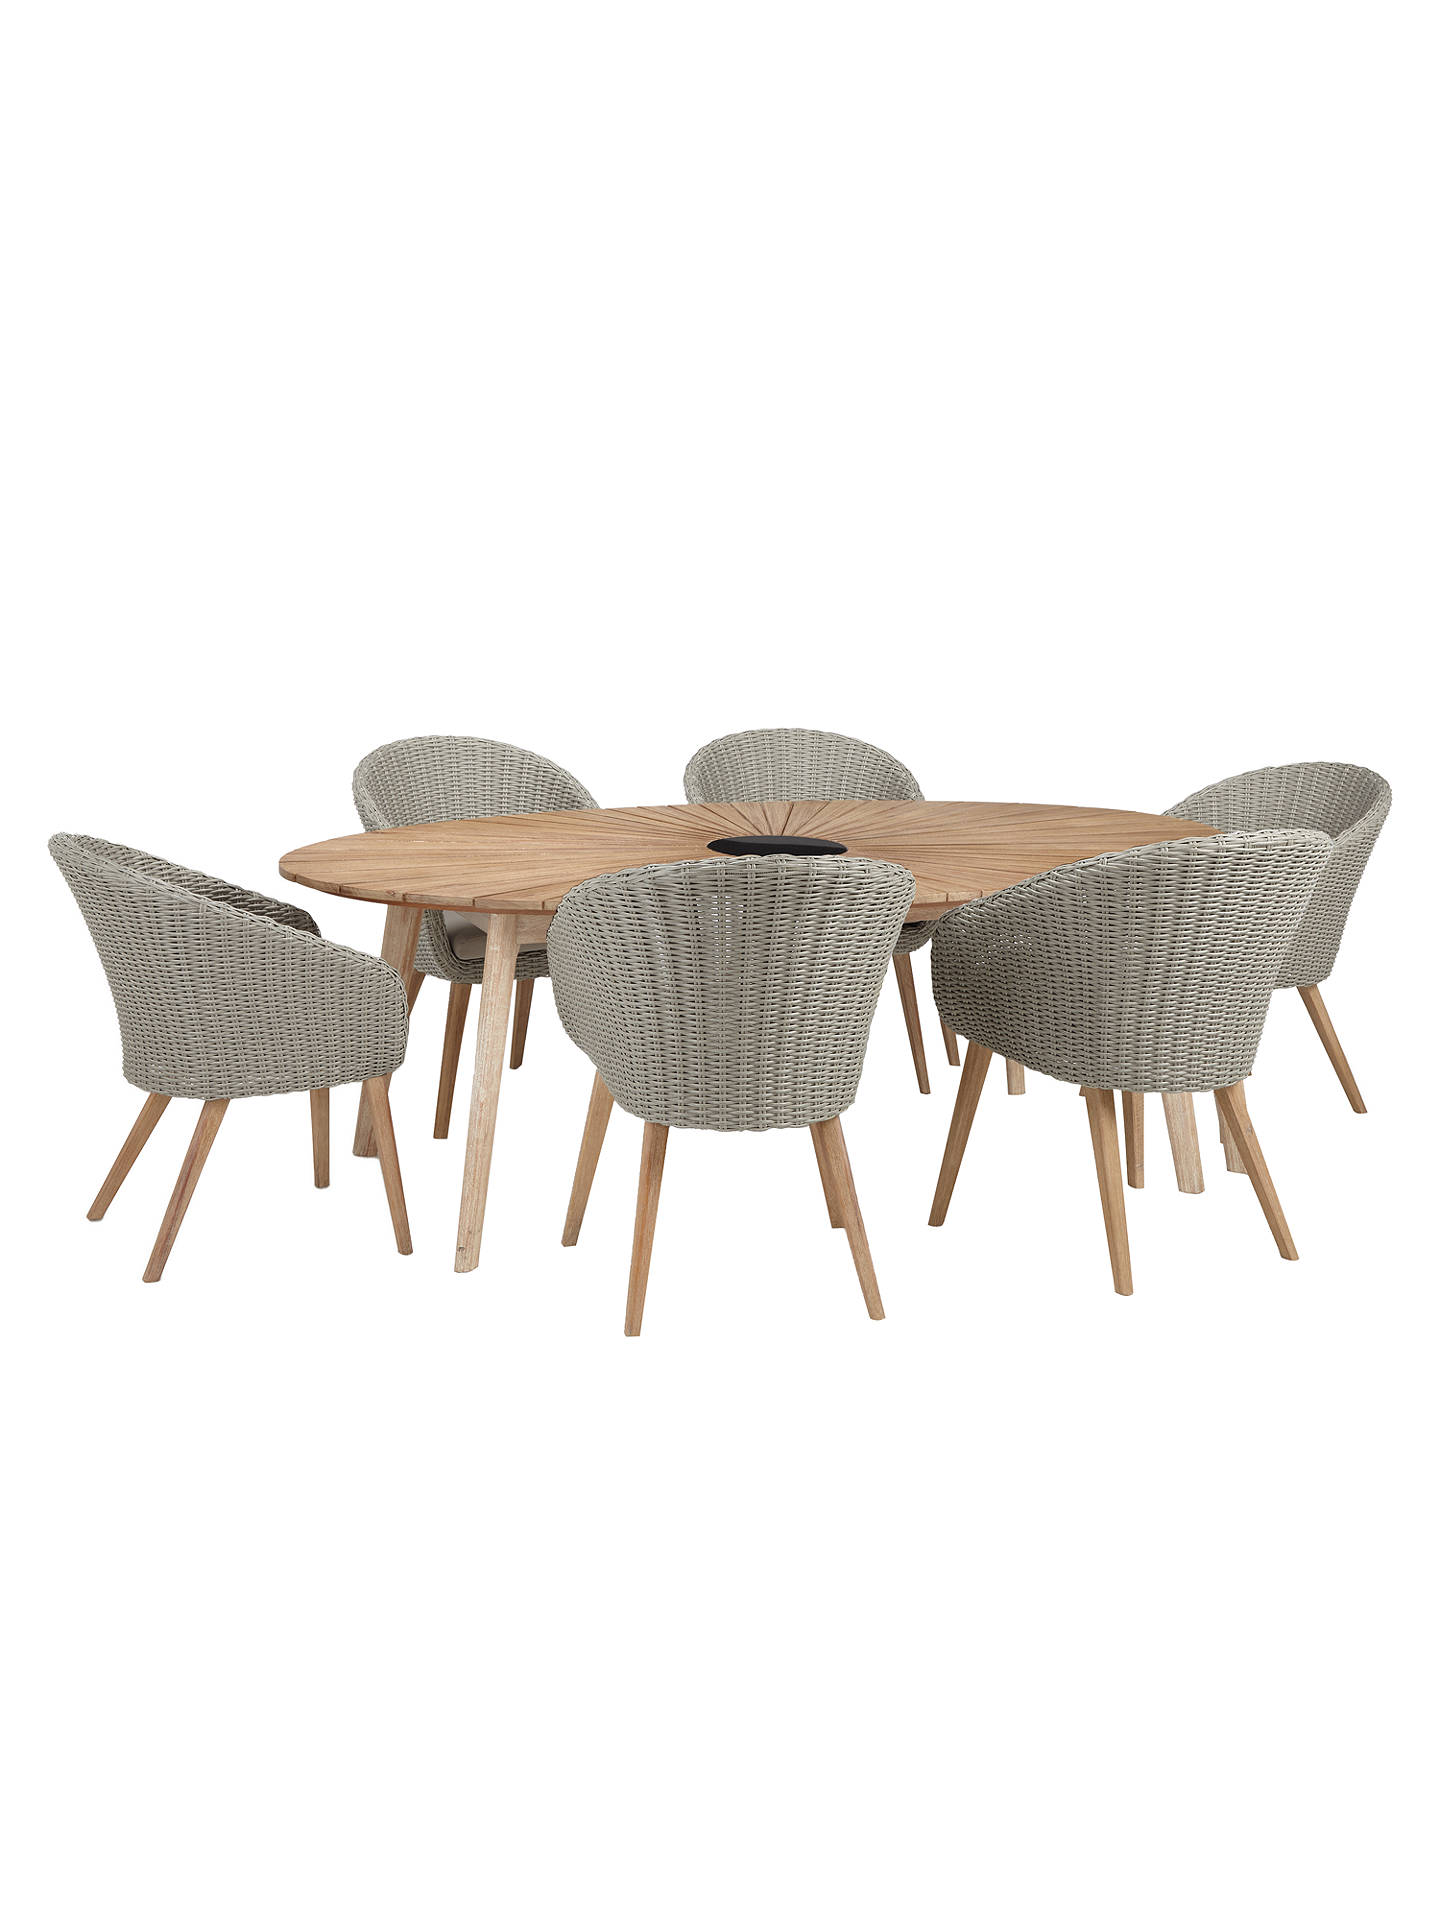 Buyjohn lewis partners sol 6 seater oval garden dining table chairs set fsc